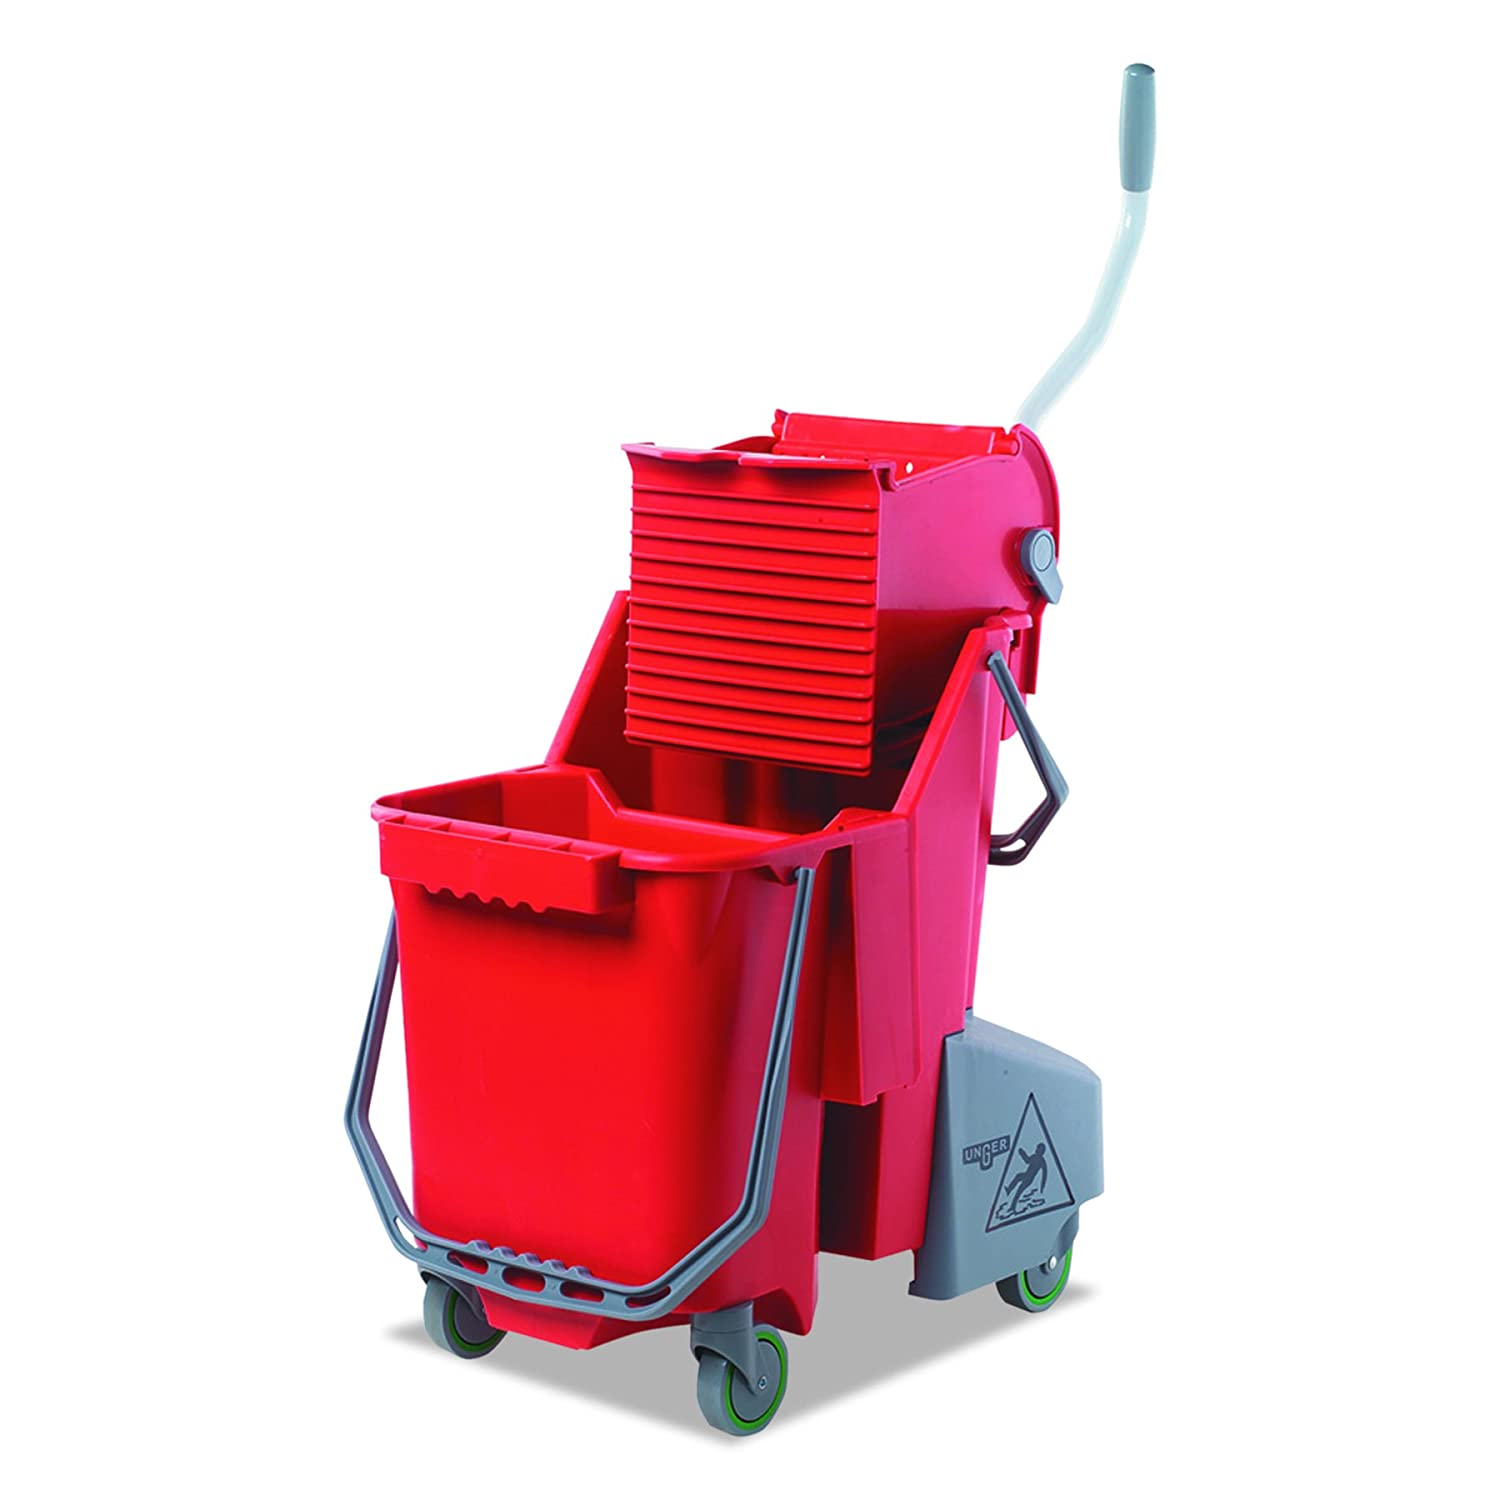 UNGER COMBR Mop Bucket and Wringer,8 gal.,Red